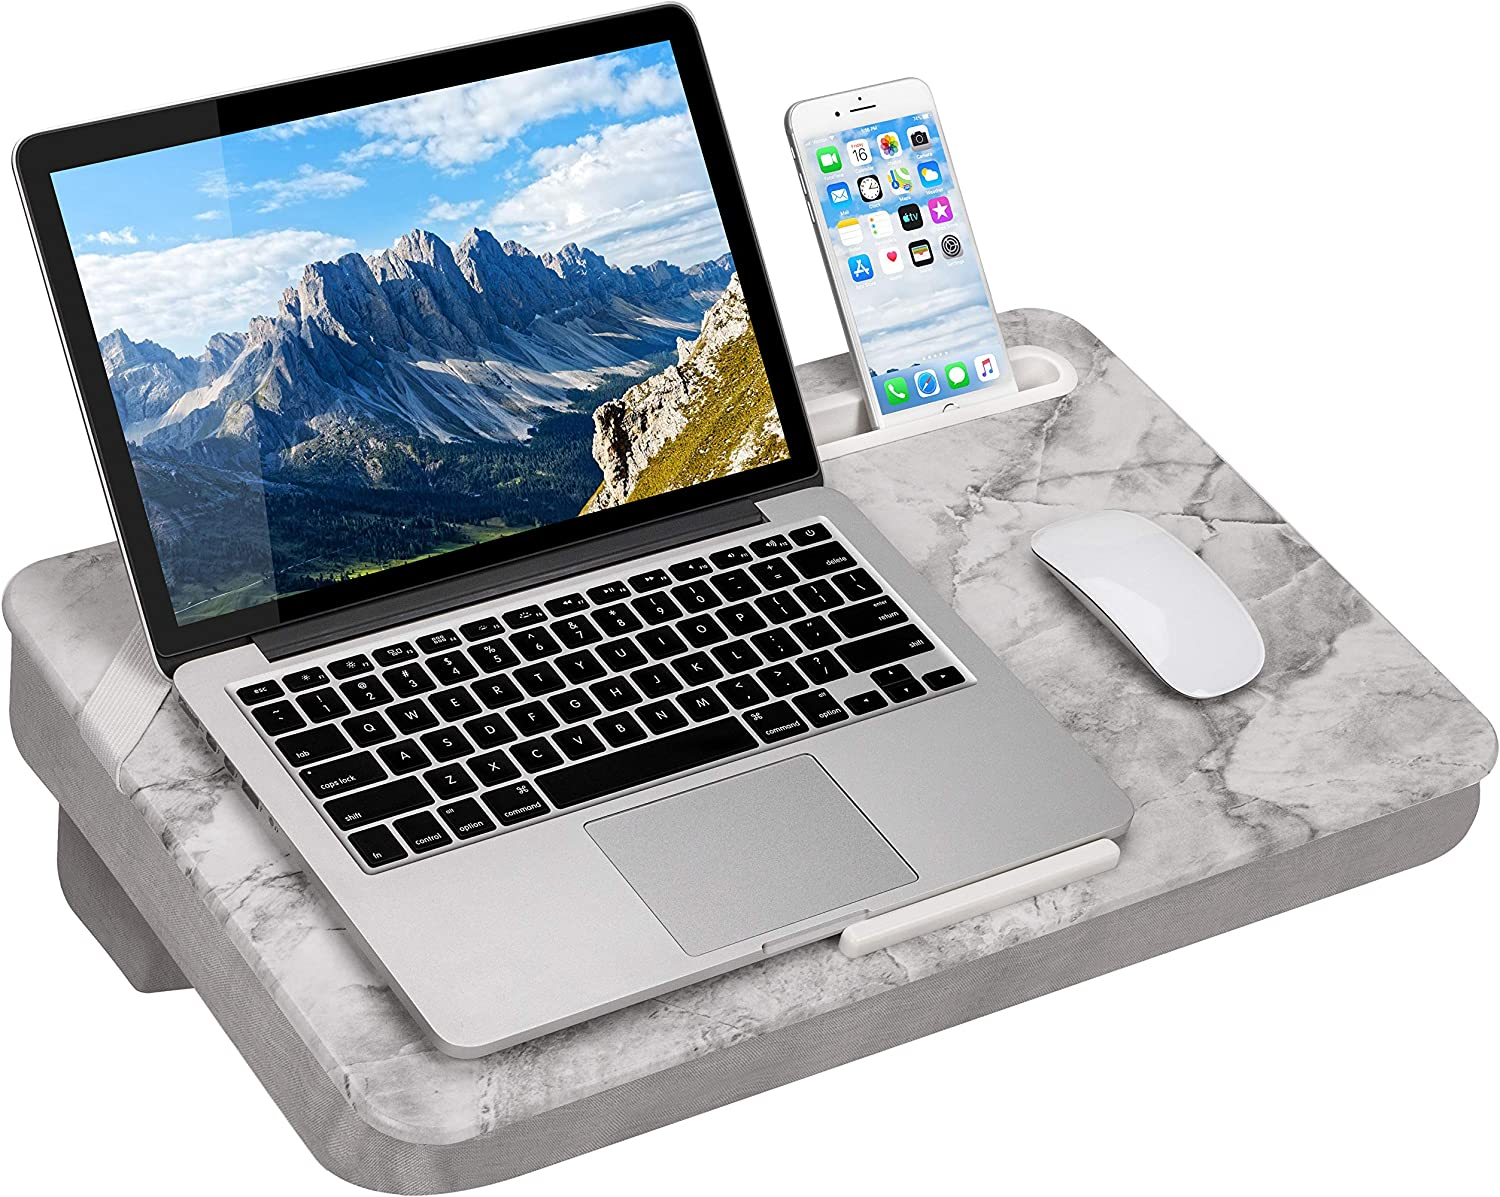 LapGear Elevation Lap Desk with Booster Cushion -White Marble - Fits up to 17.3 Inch Laptops - Style No. 87966